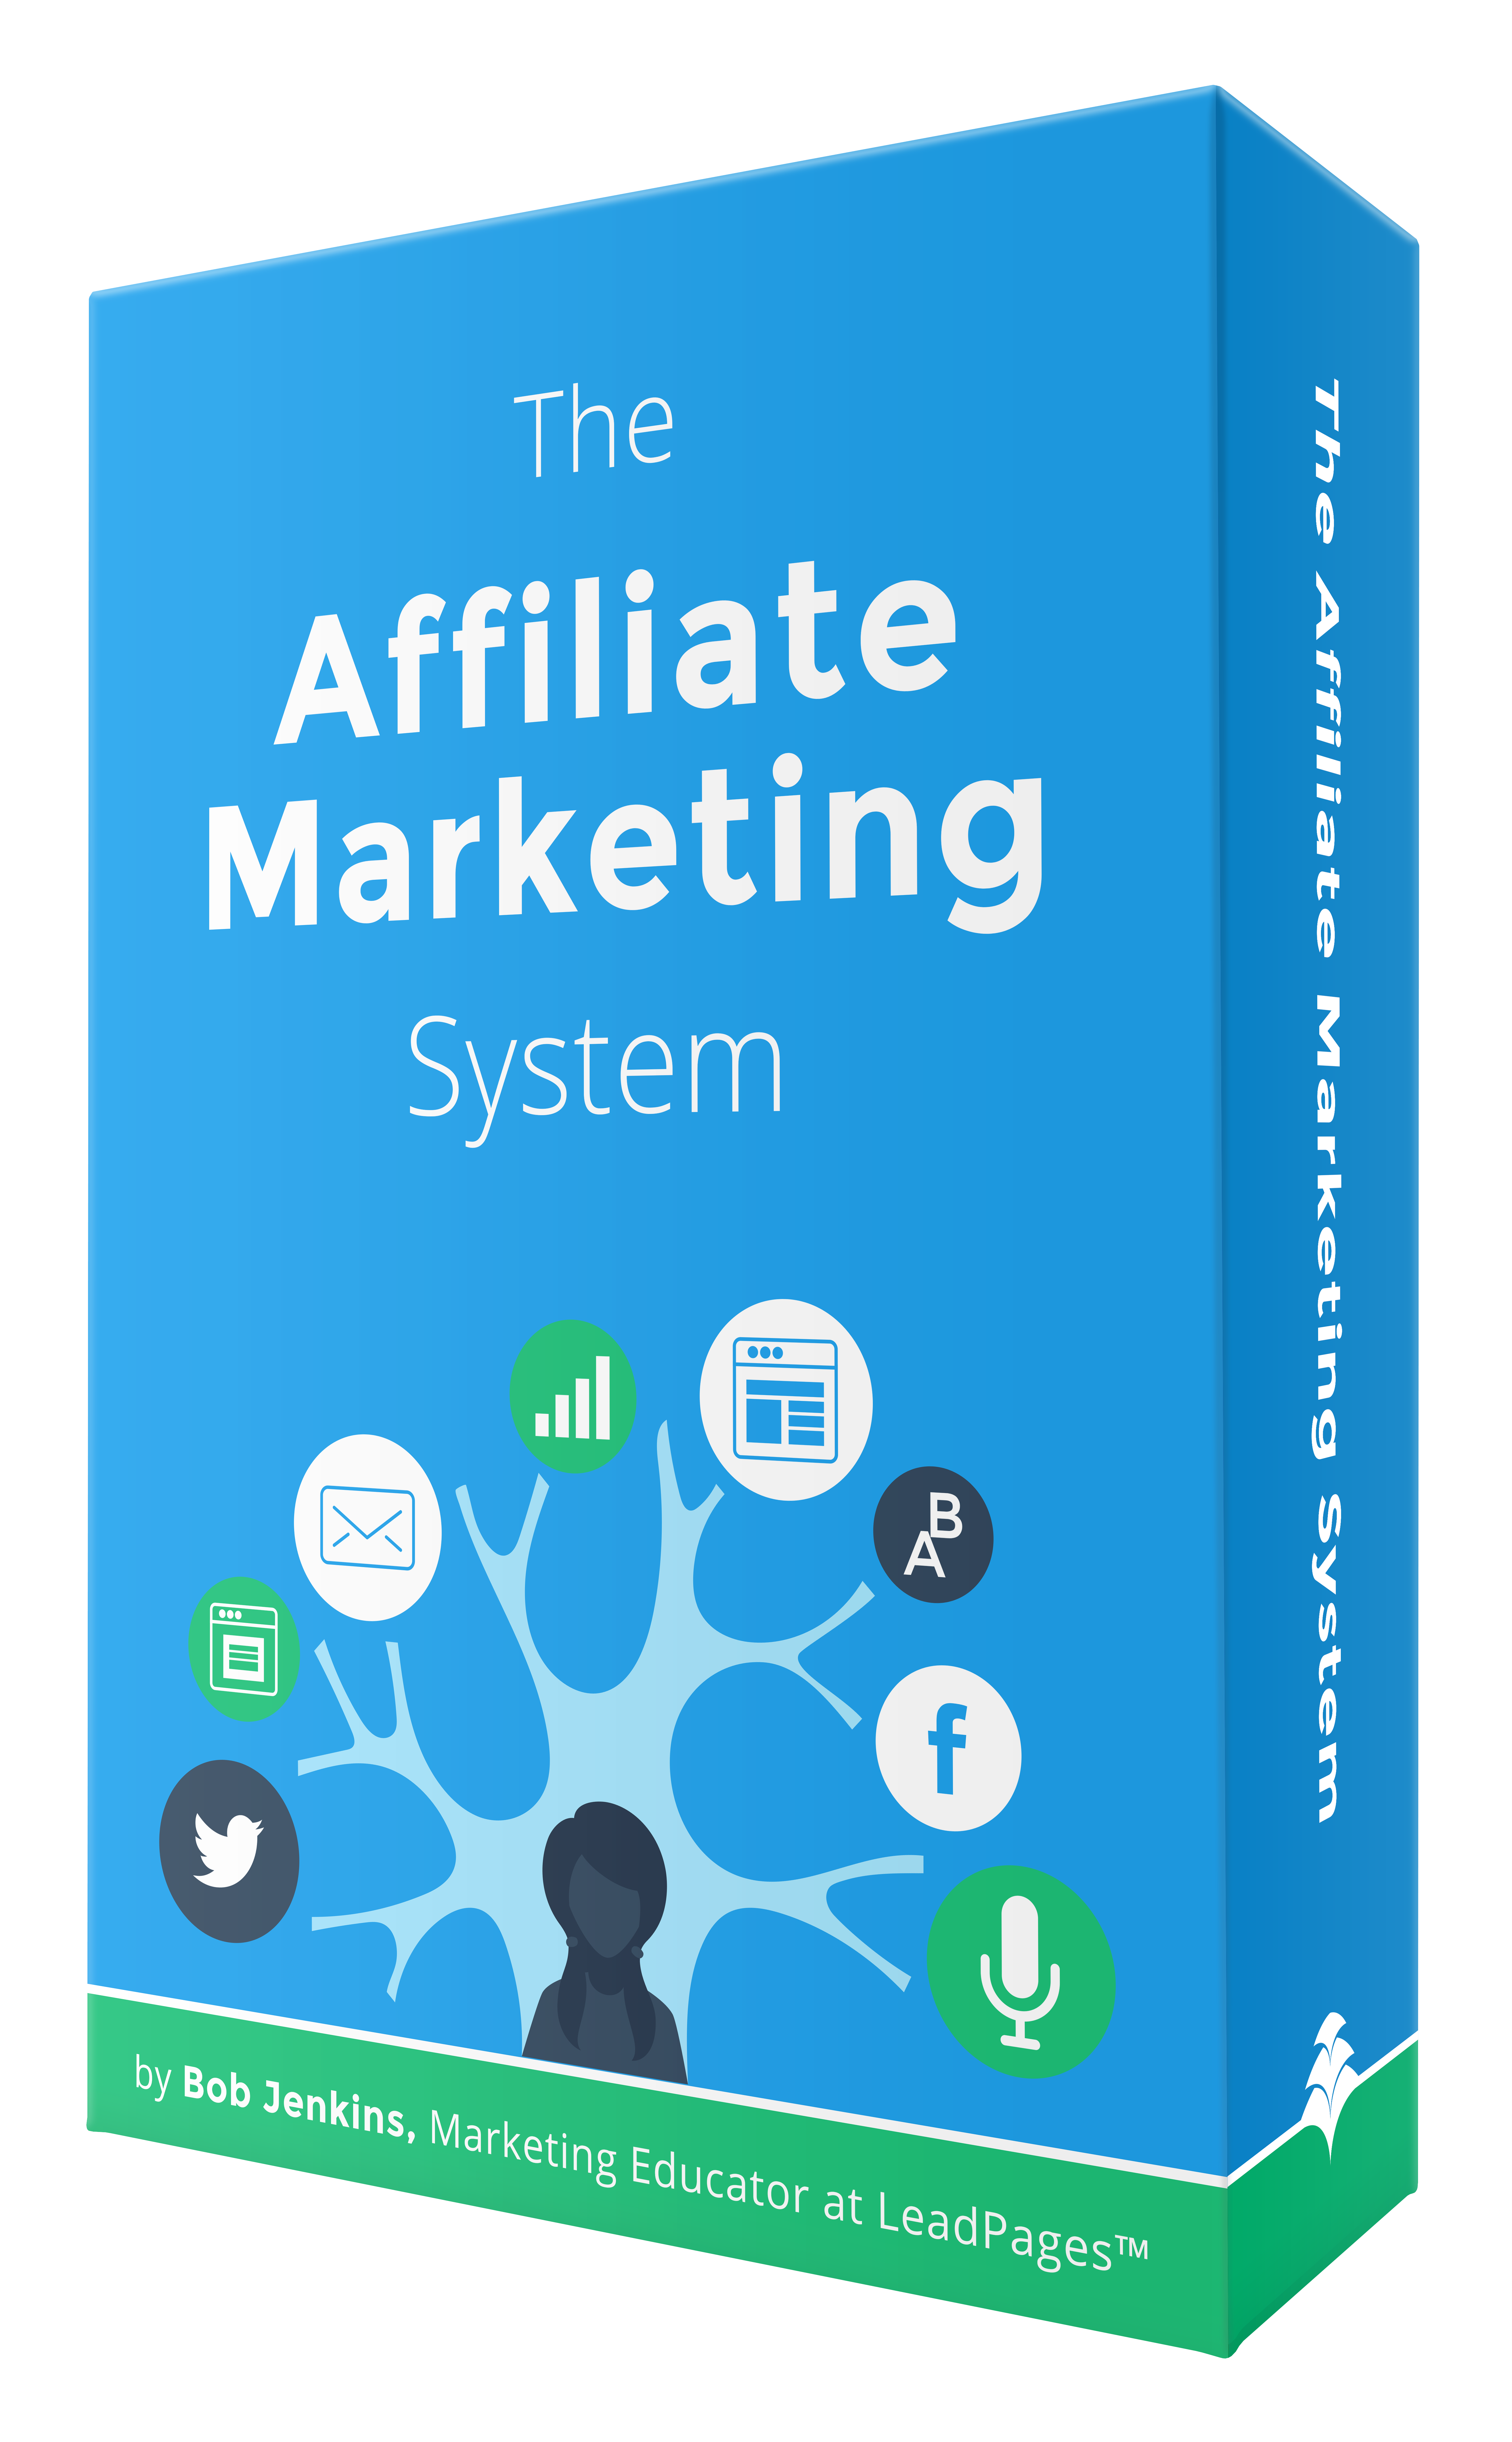 how to build leadpages for affiliate marketing